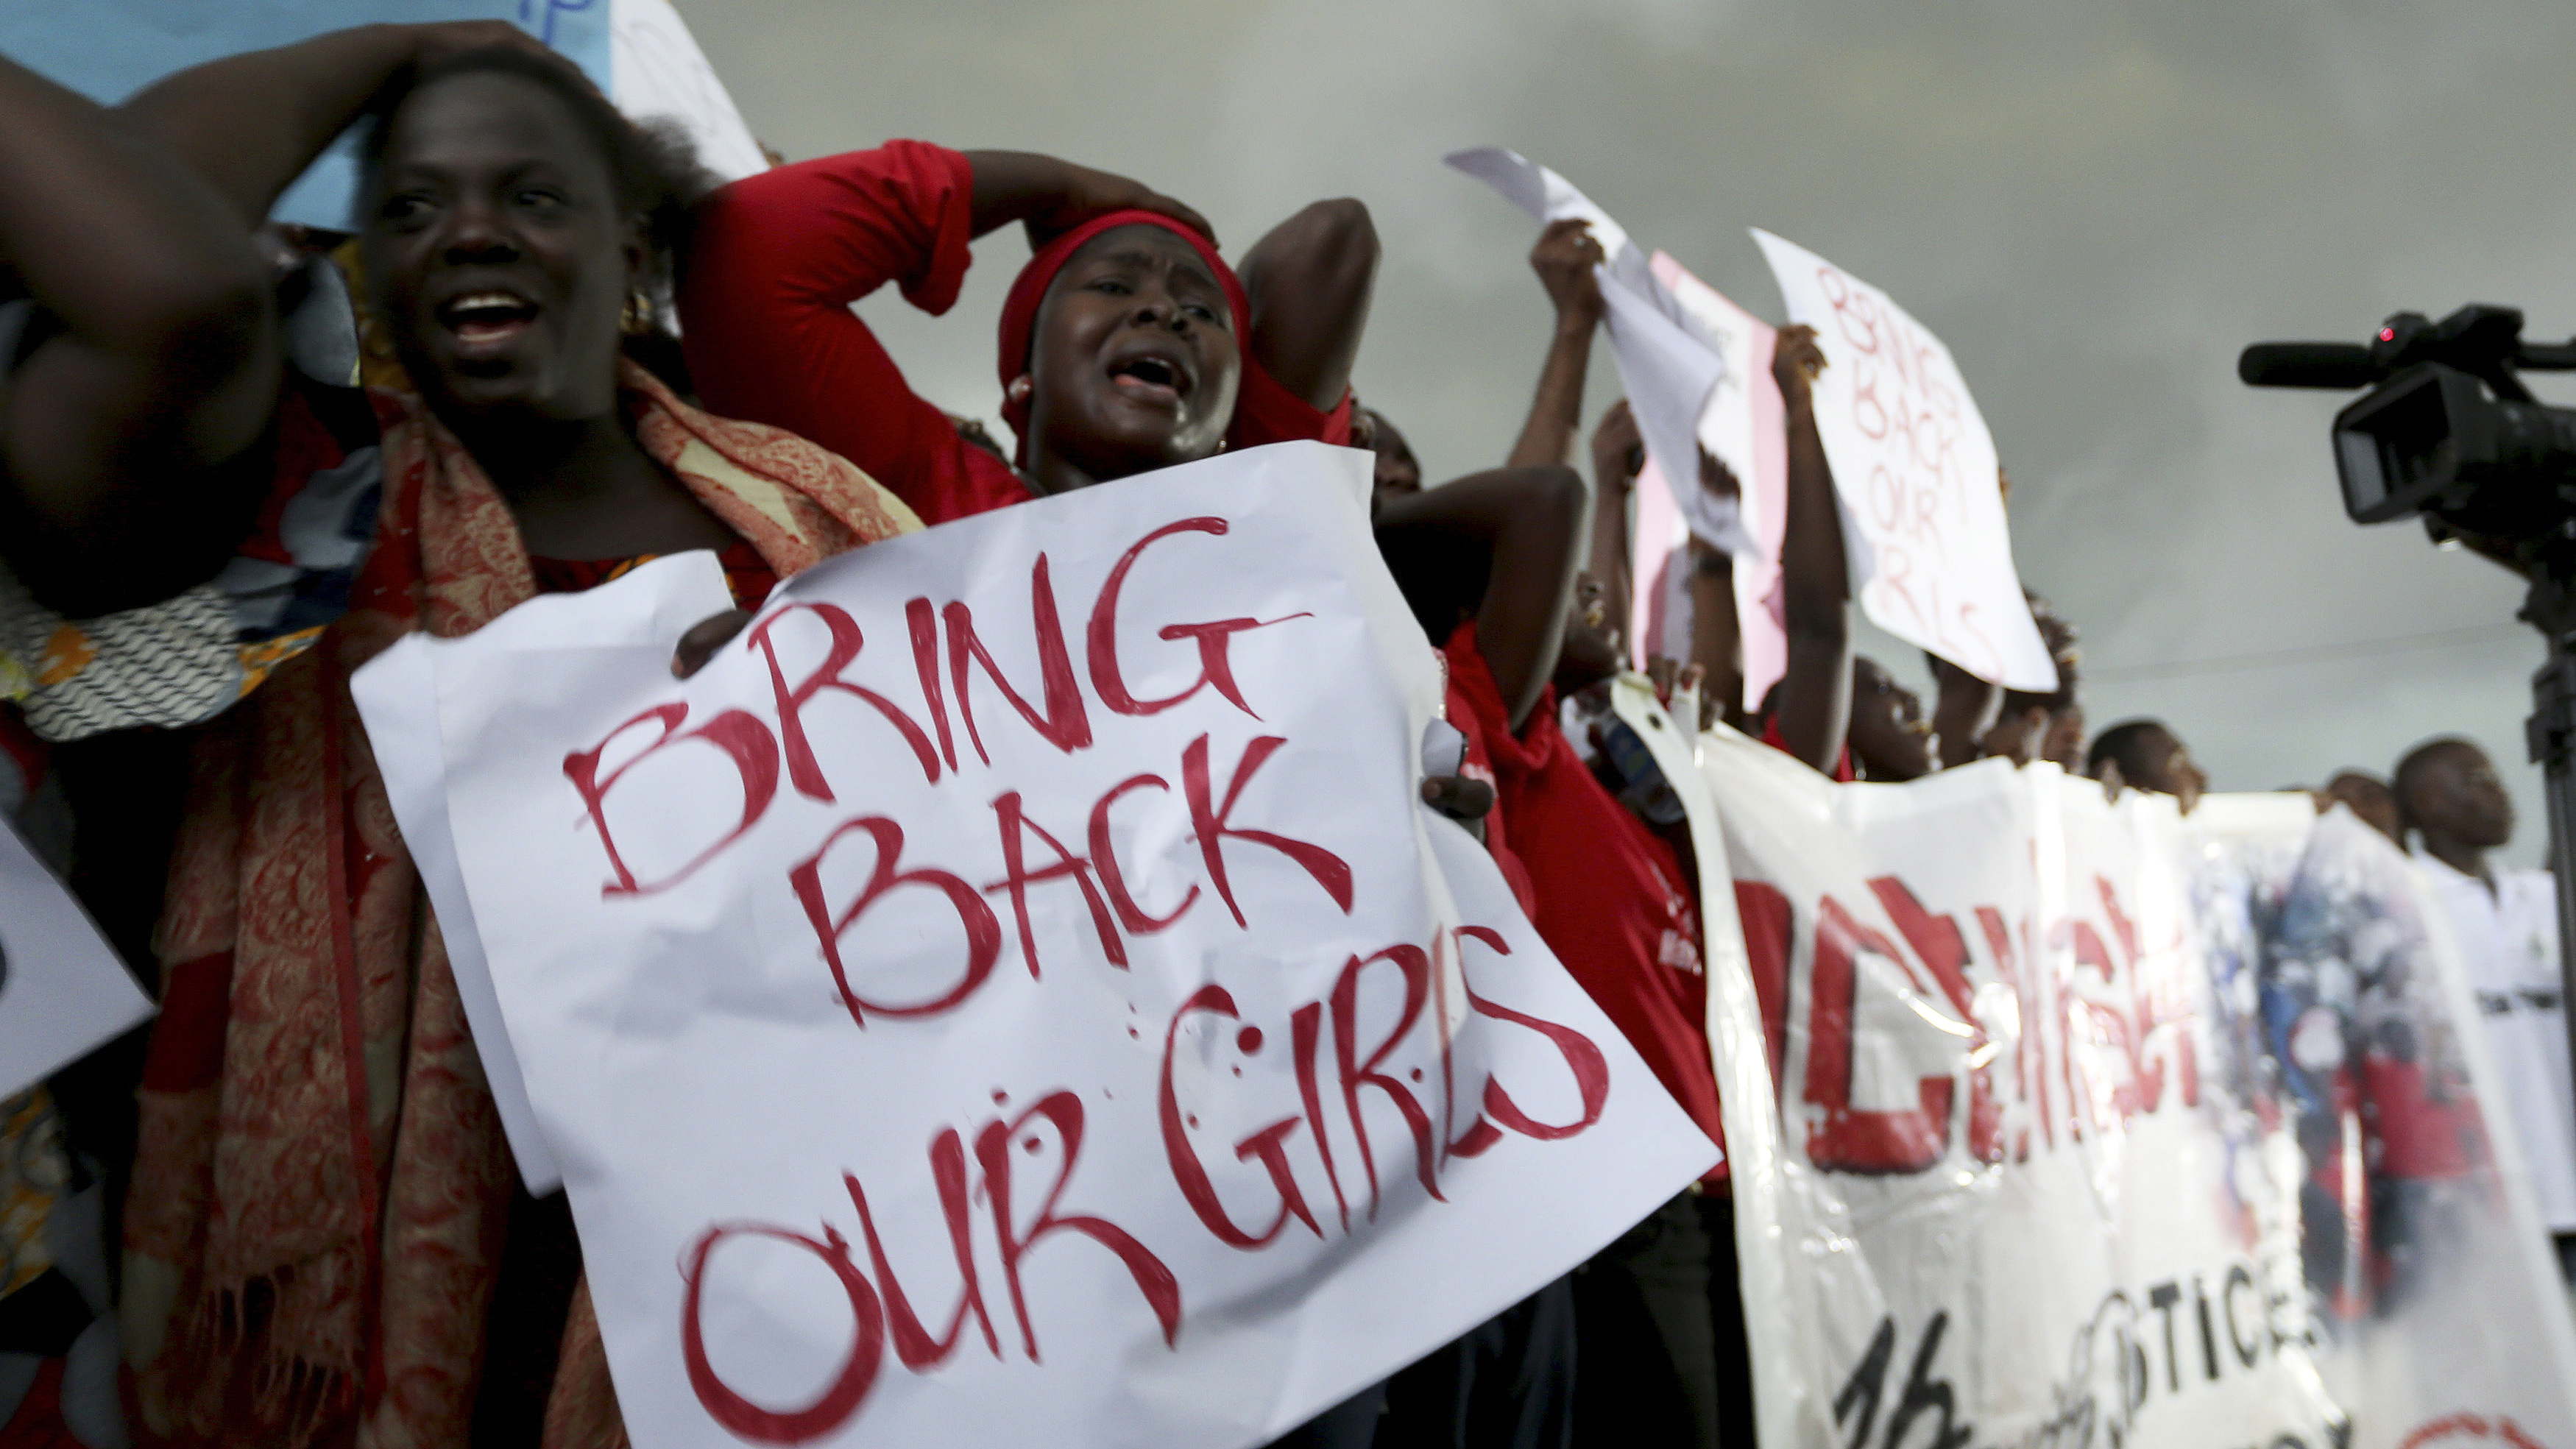 Women react during a protest demanding security forces to search harder for 200 schoolgirls abducted by Islamist militants two weeks ago, outside Nigeria's parliament in Abuja April 30, 2014. Scores of suspected Boko Haram gunmen stormed an all-girls secondary school in the village of Chibok, in Borno state, on April 14, packing the teenagers onto trucks and disappearing into a remote, hilly area along the Cameroon border. REUTERS/Afolabi Sotunde (NIGERIA - Tags: CIVIL UNREST RELIGION EDUCATION TPX IMAGES OF THE DAY) - RTR3NB21